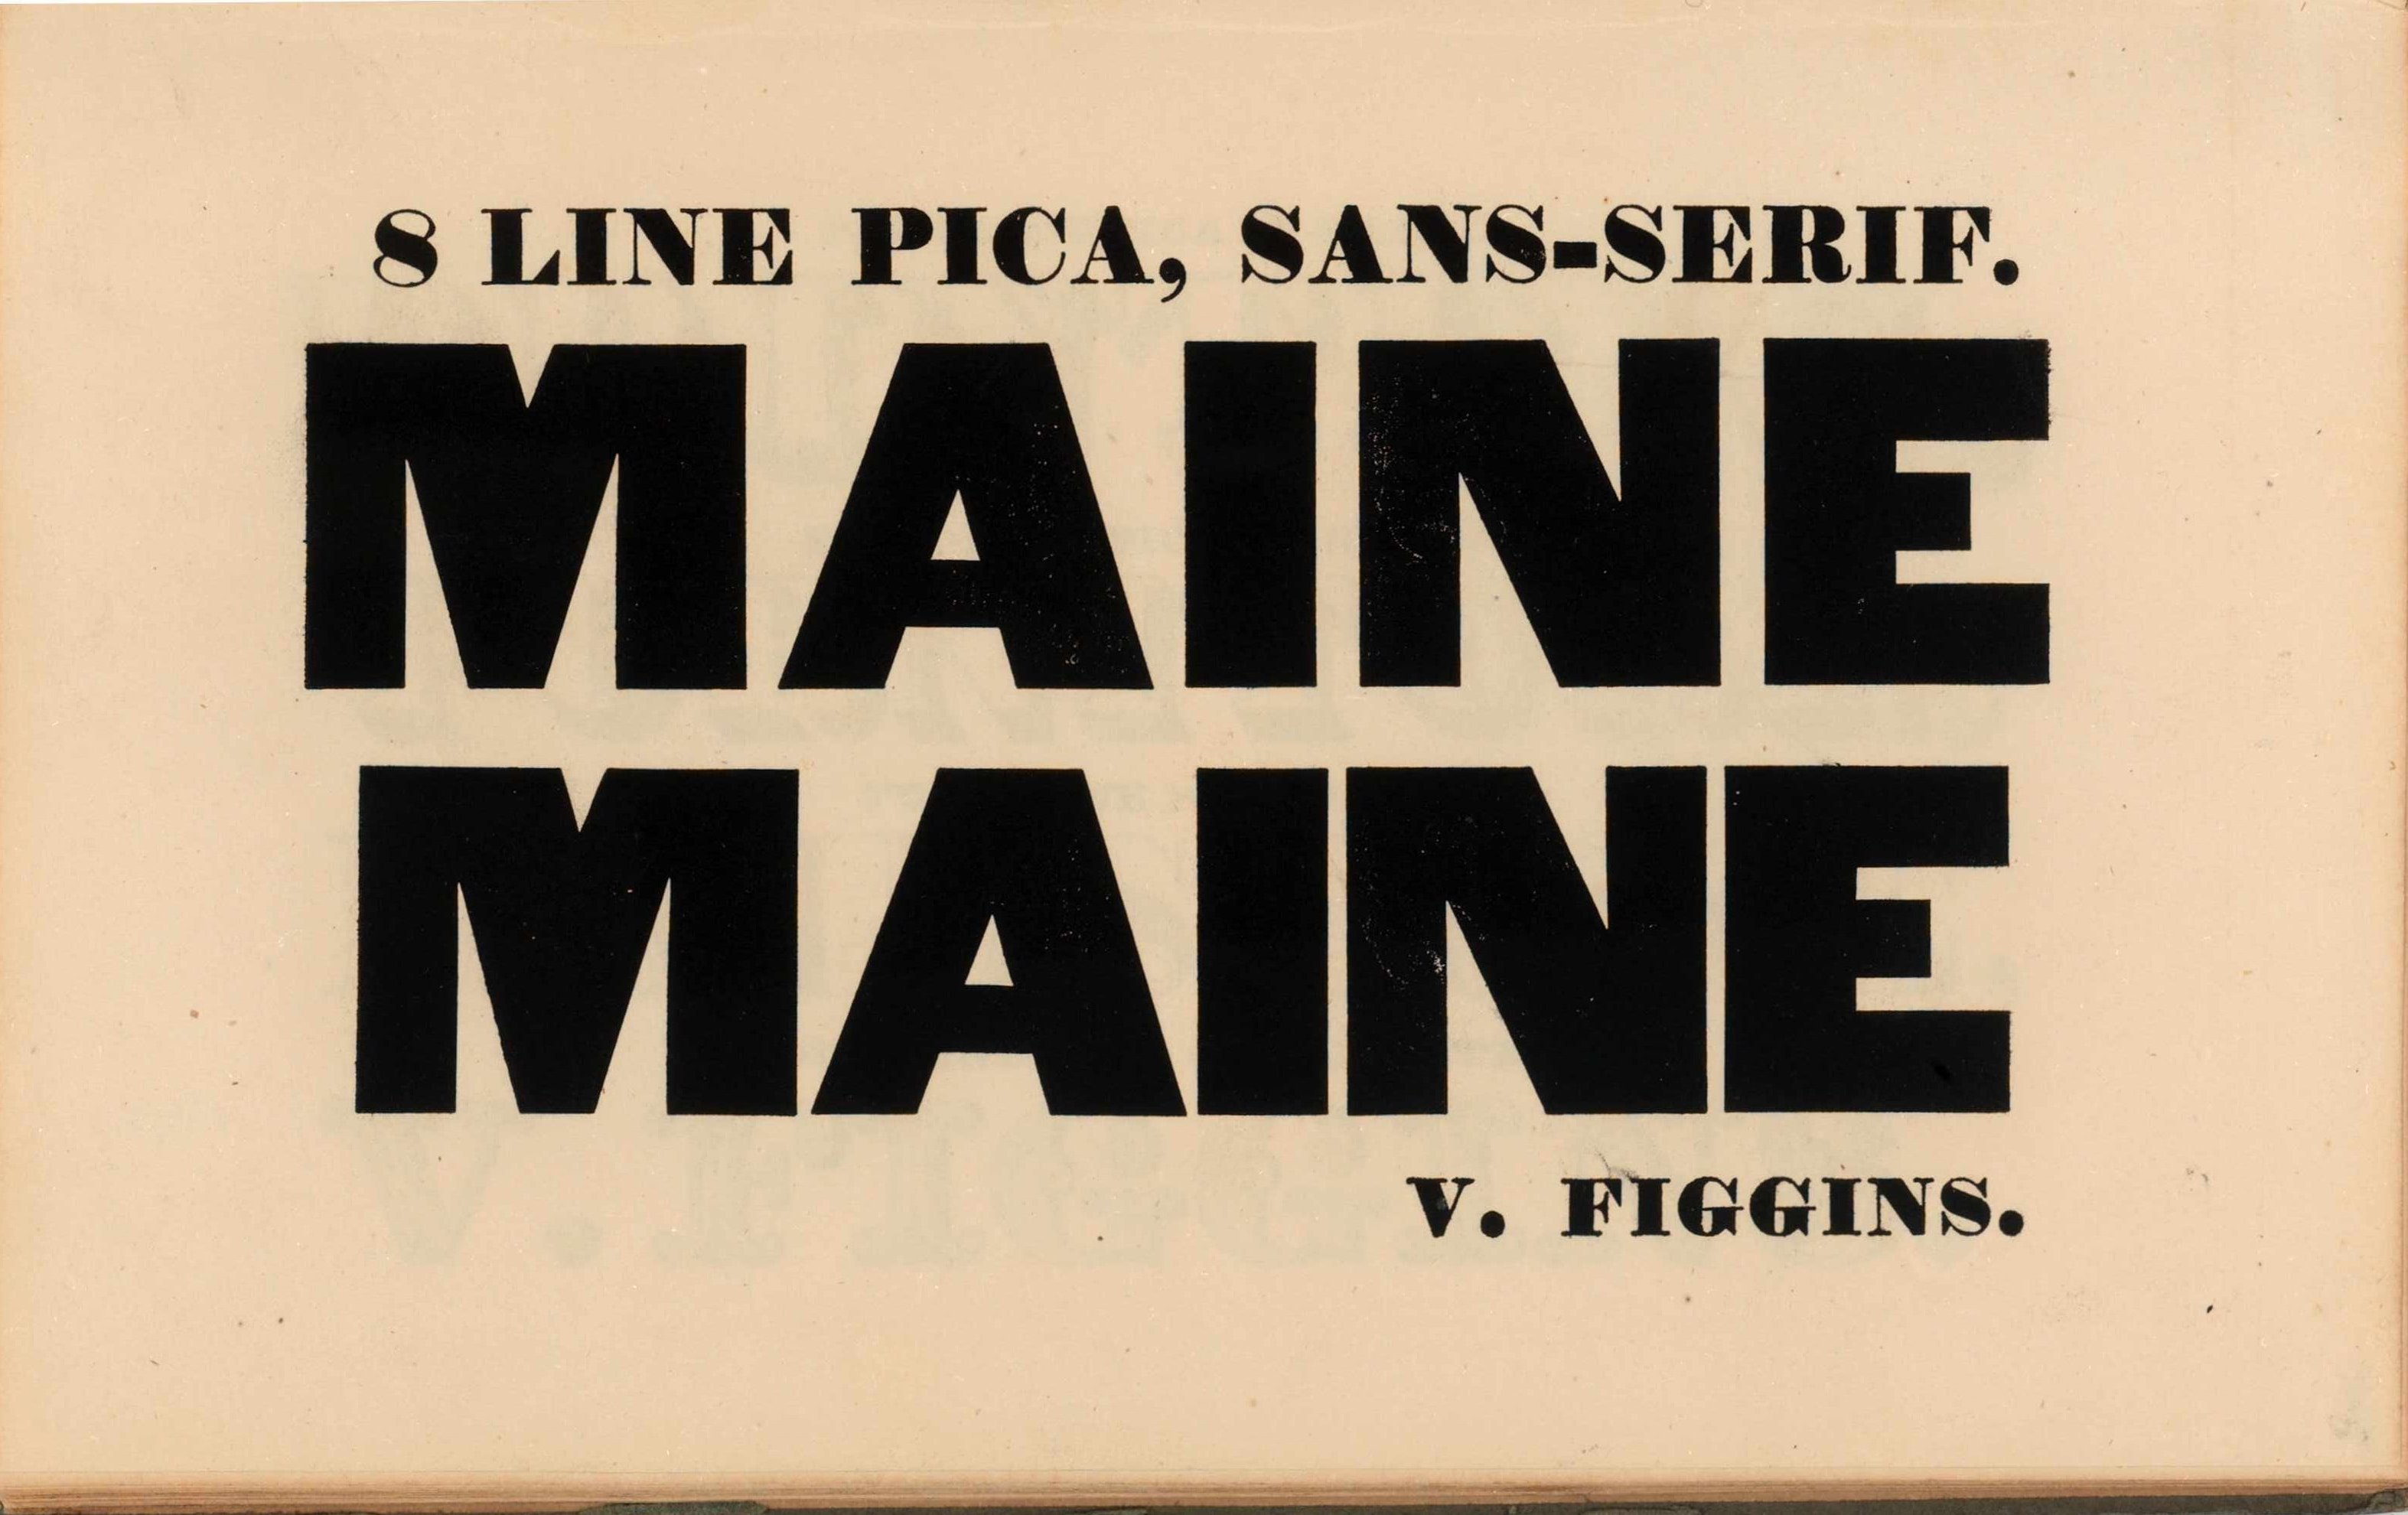 Vincent Figgins, Specimen of printing types. London 1828.